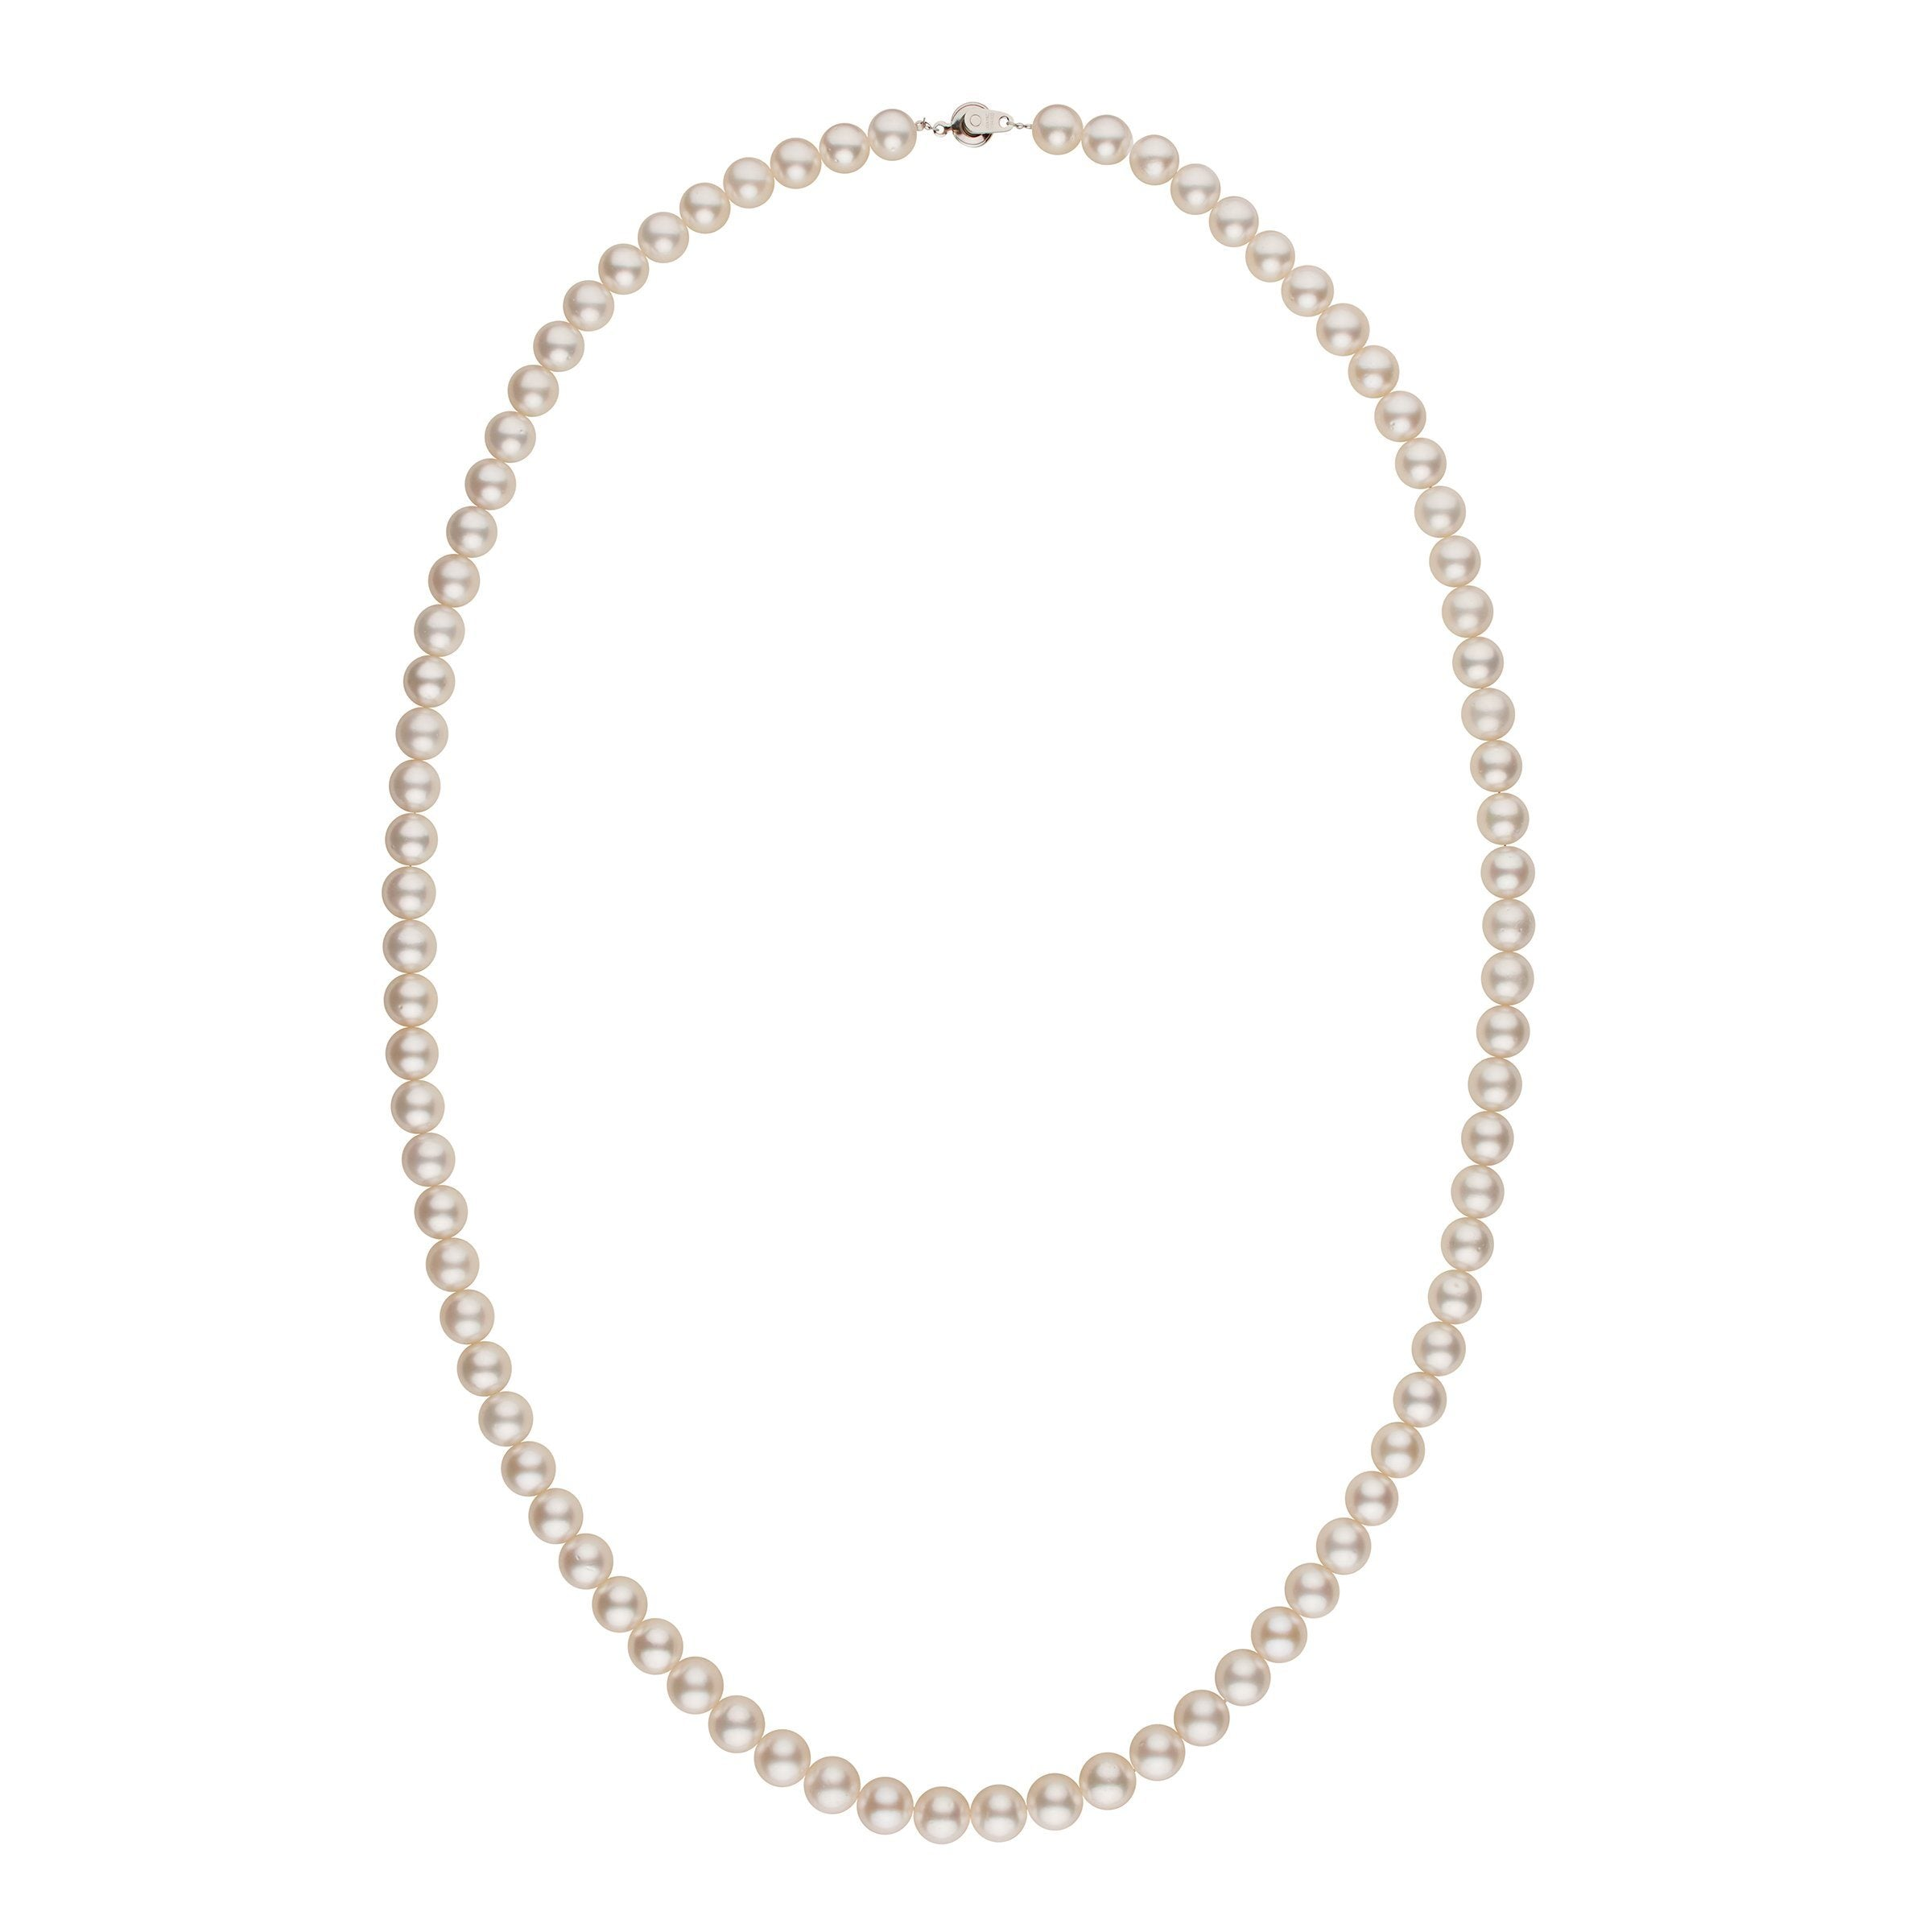 The Sempre White South Sea Pearl Necklace